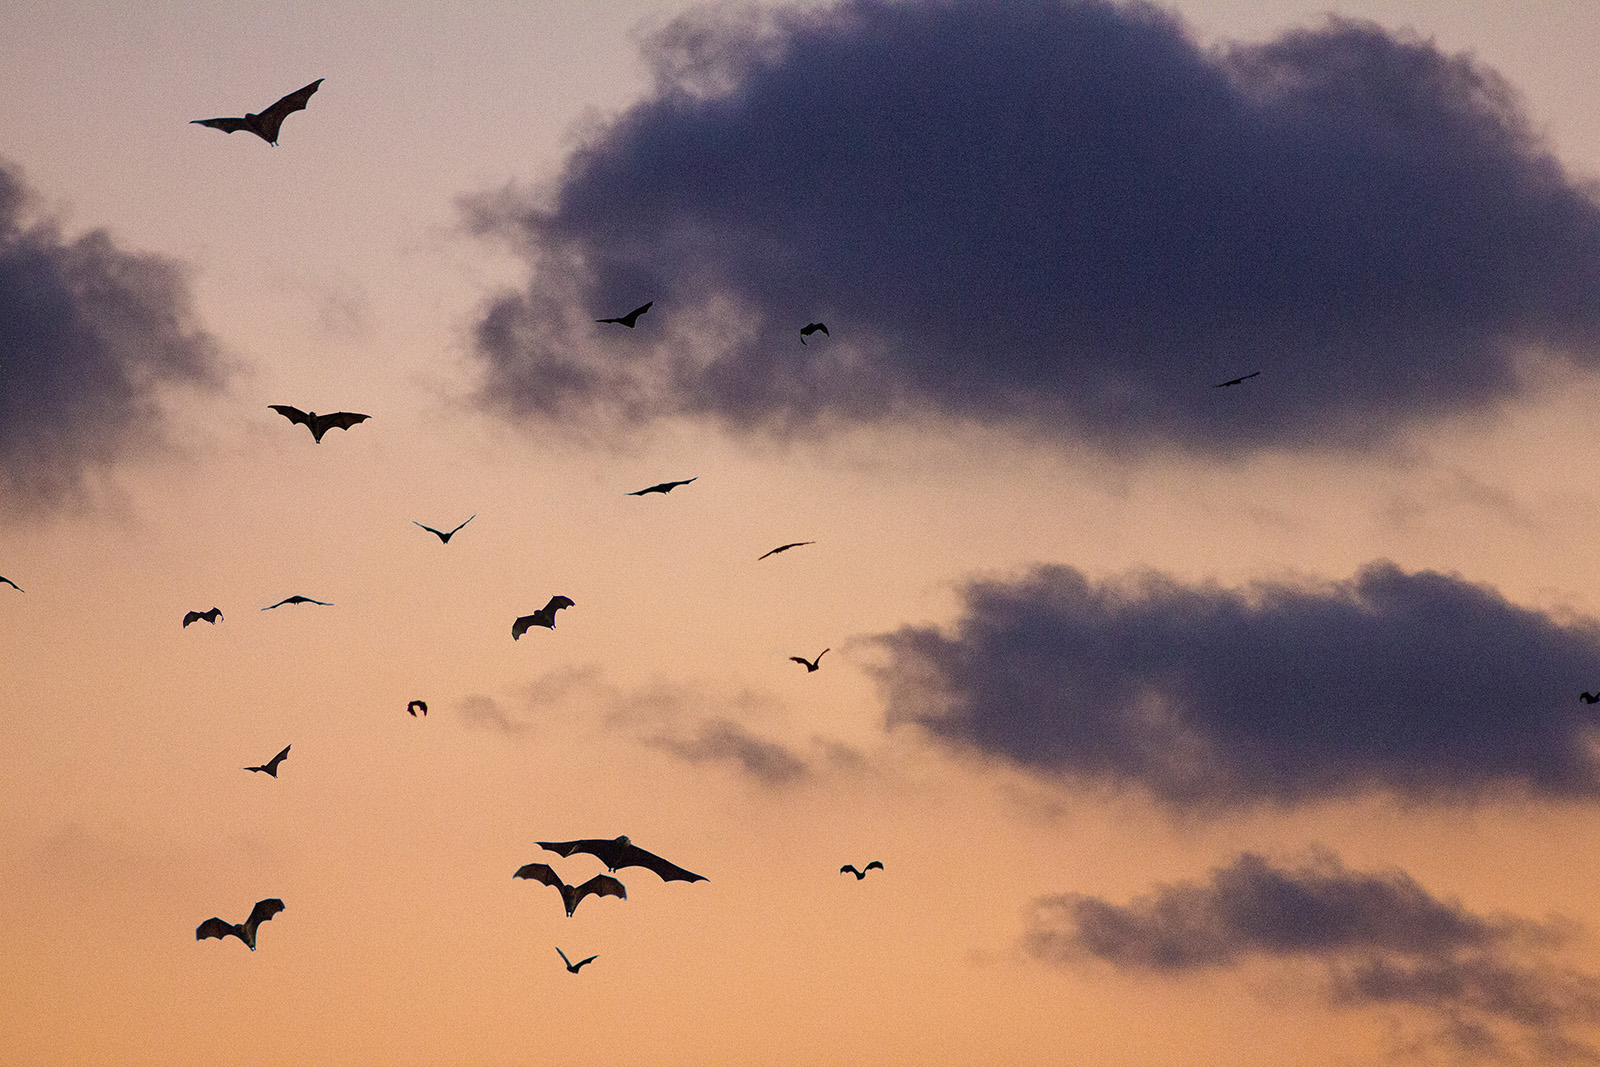 bats flying in the evening sky